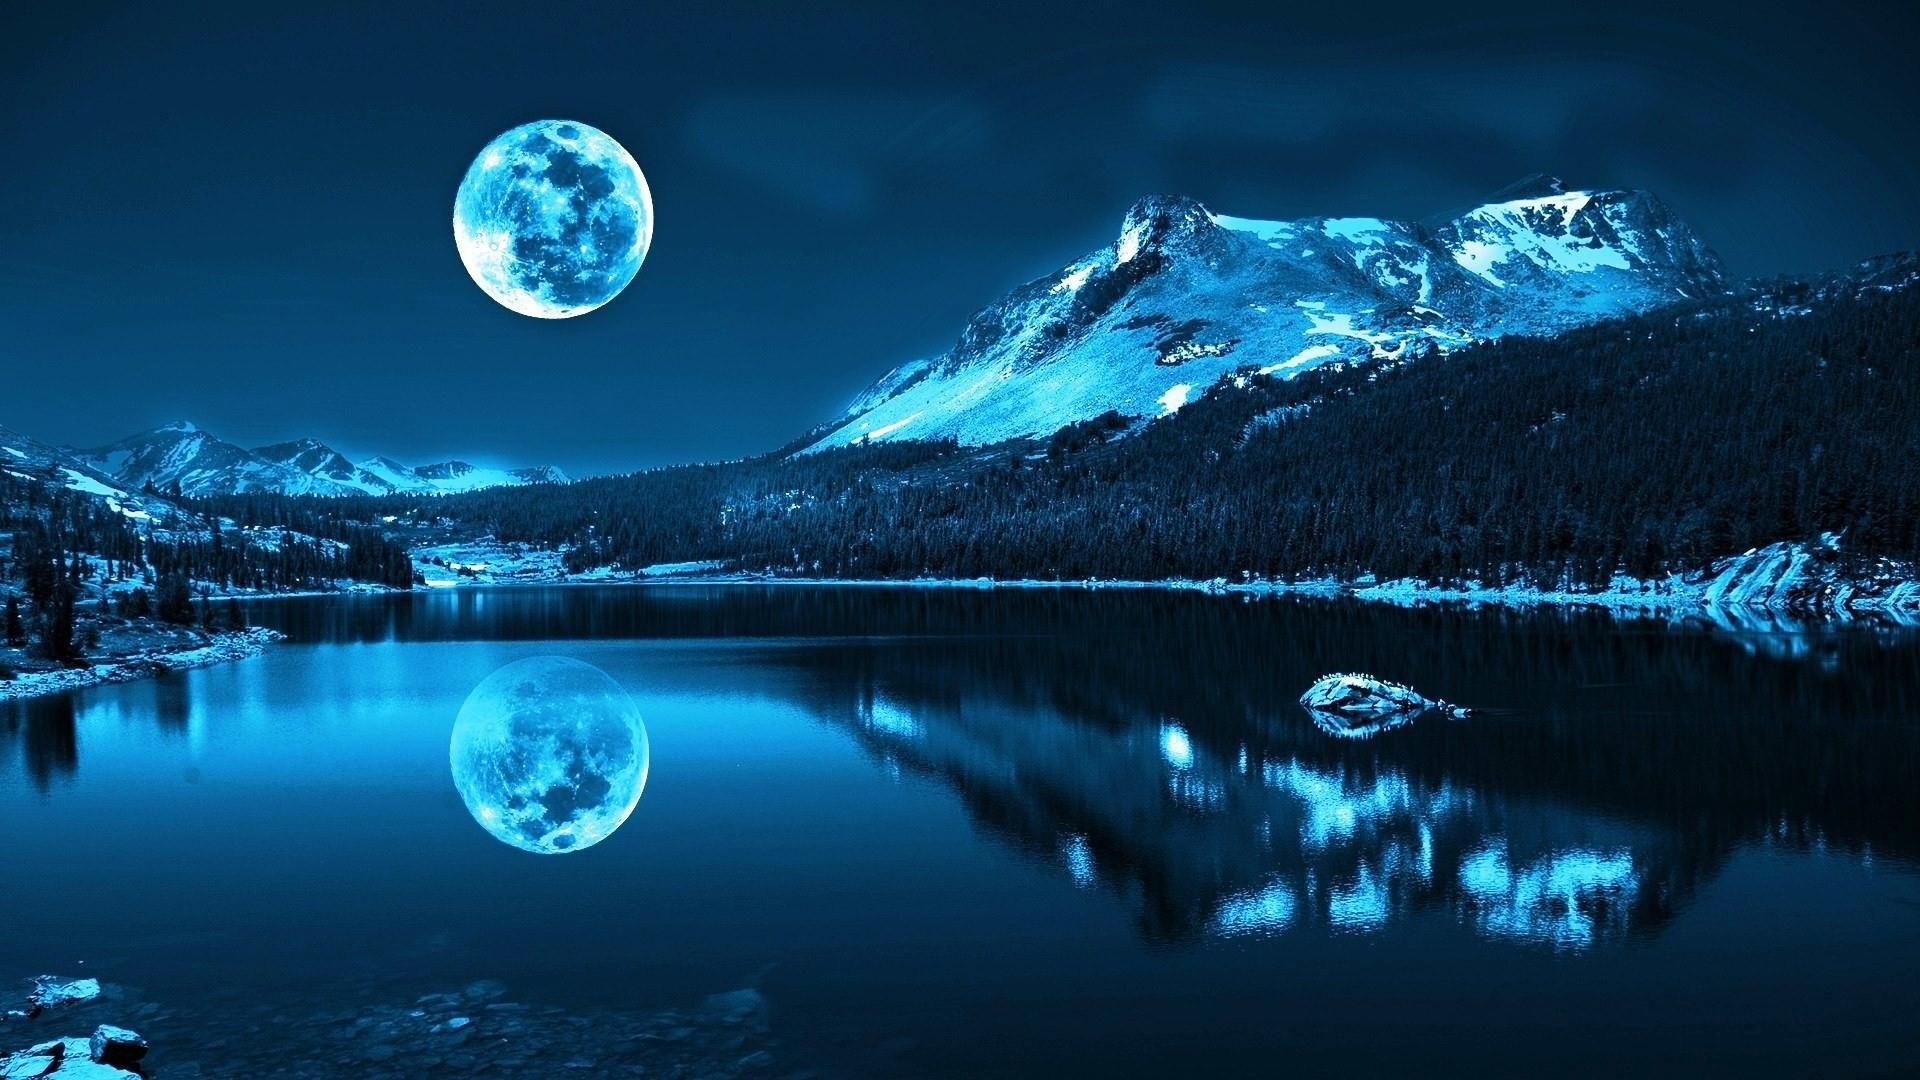 mountain moon lake hd wallpapers. download desktop backgrounds